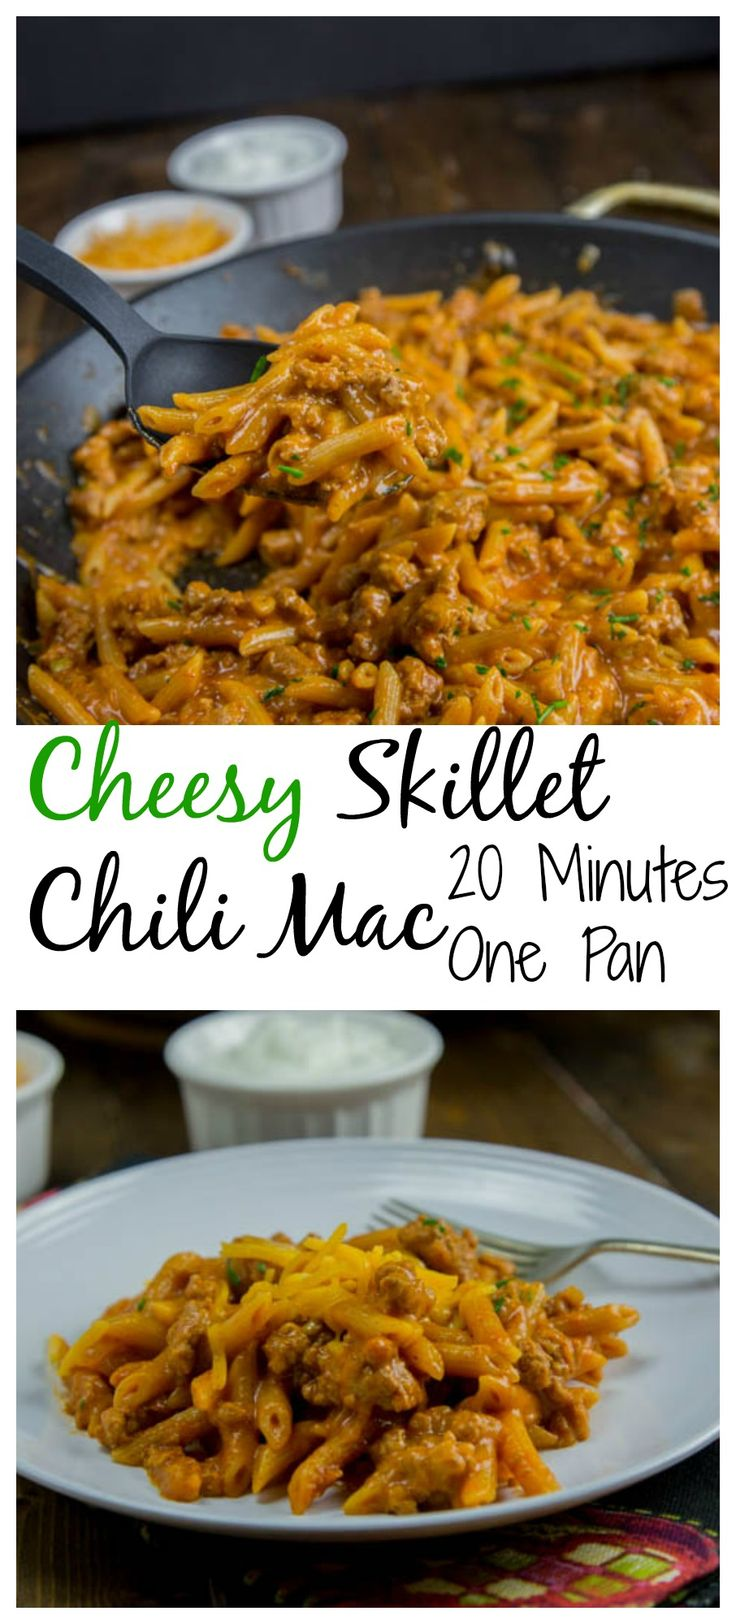 Cheesy Skillet Chili Mac - Two comfort foods come together in a one skillet dinner the whole family will love.  Plus it is ready in only 20 minutes!